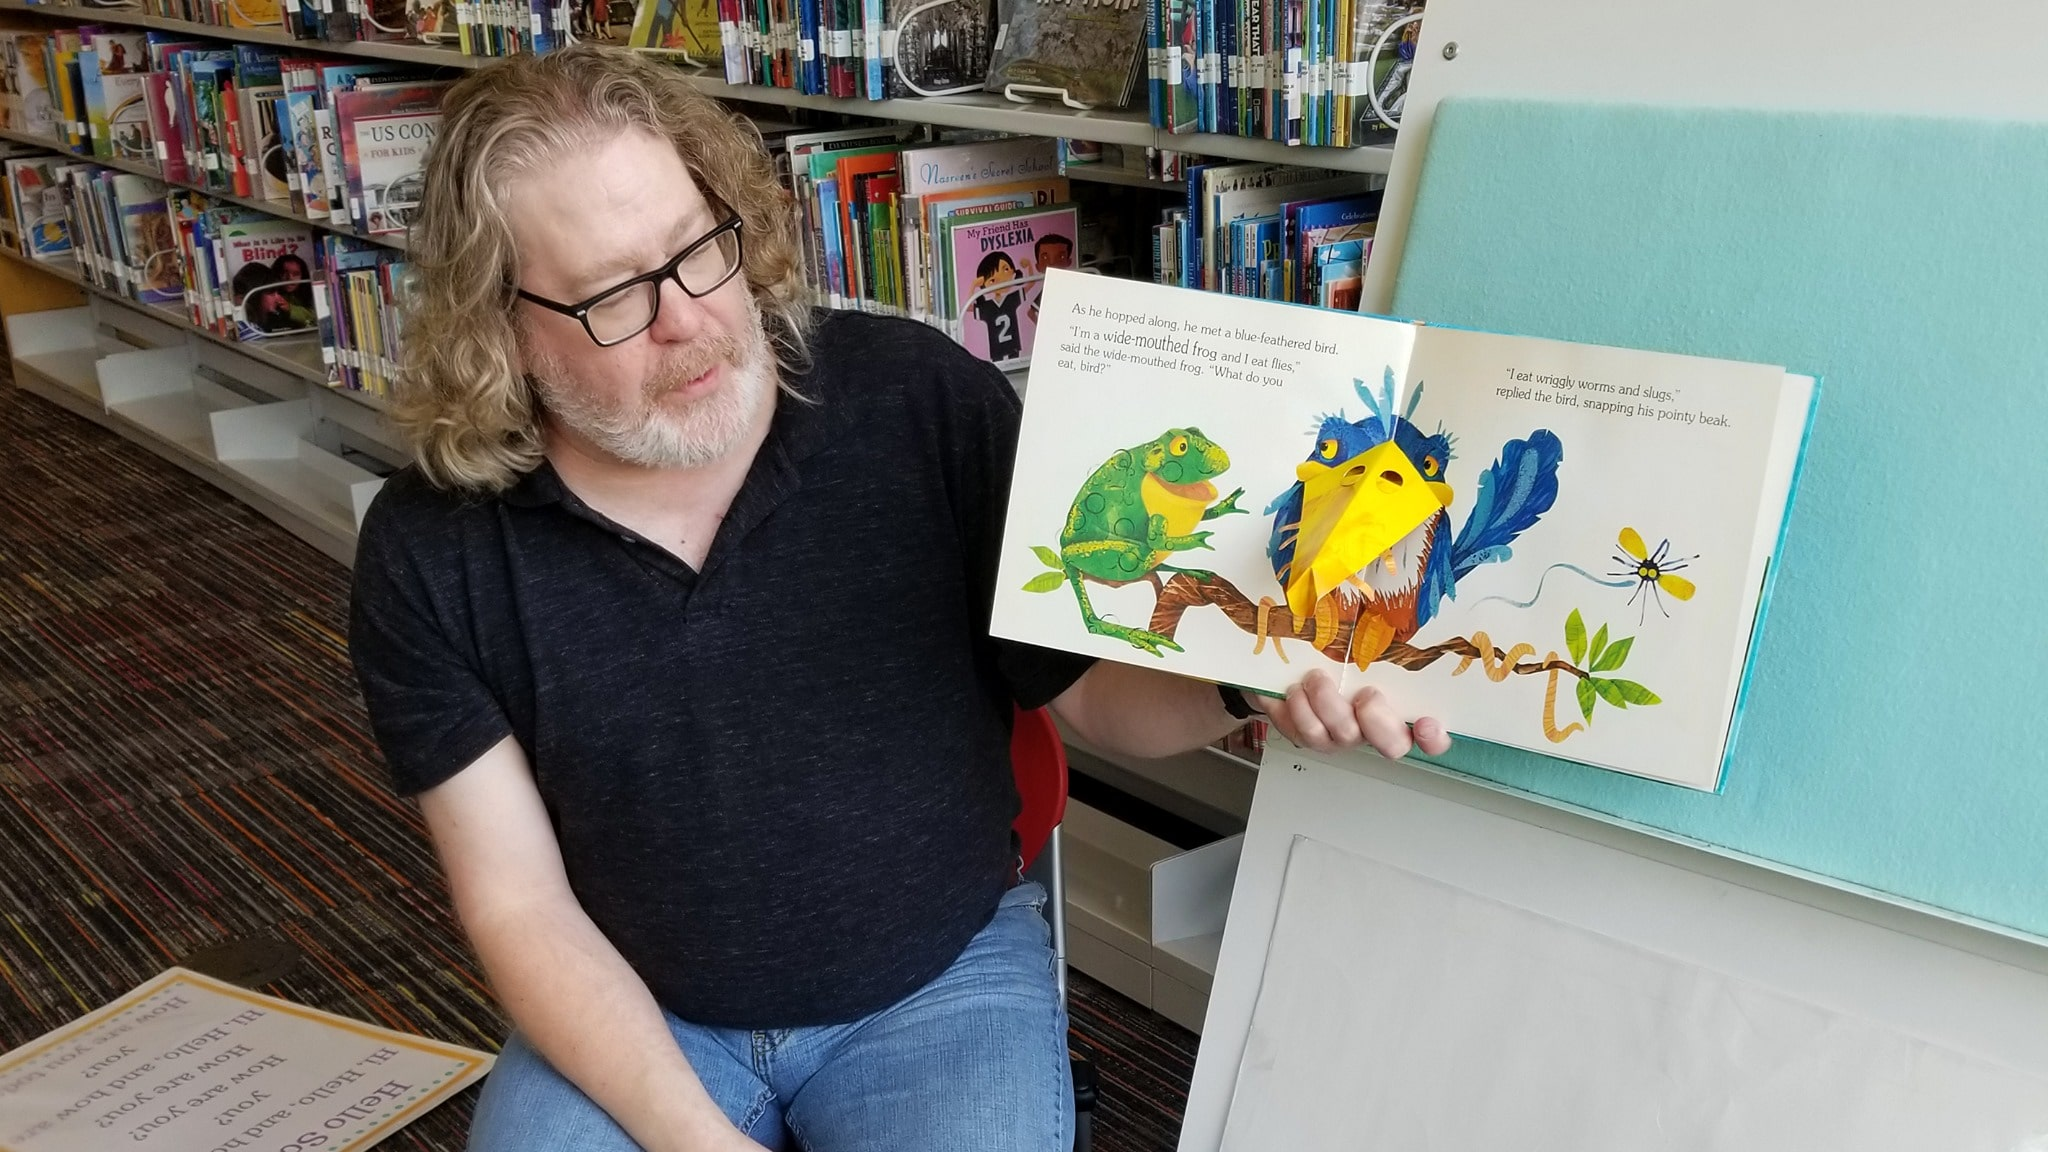 story time at Plano Public Library